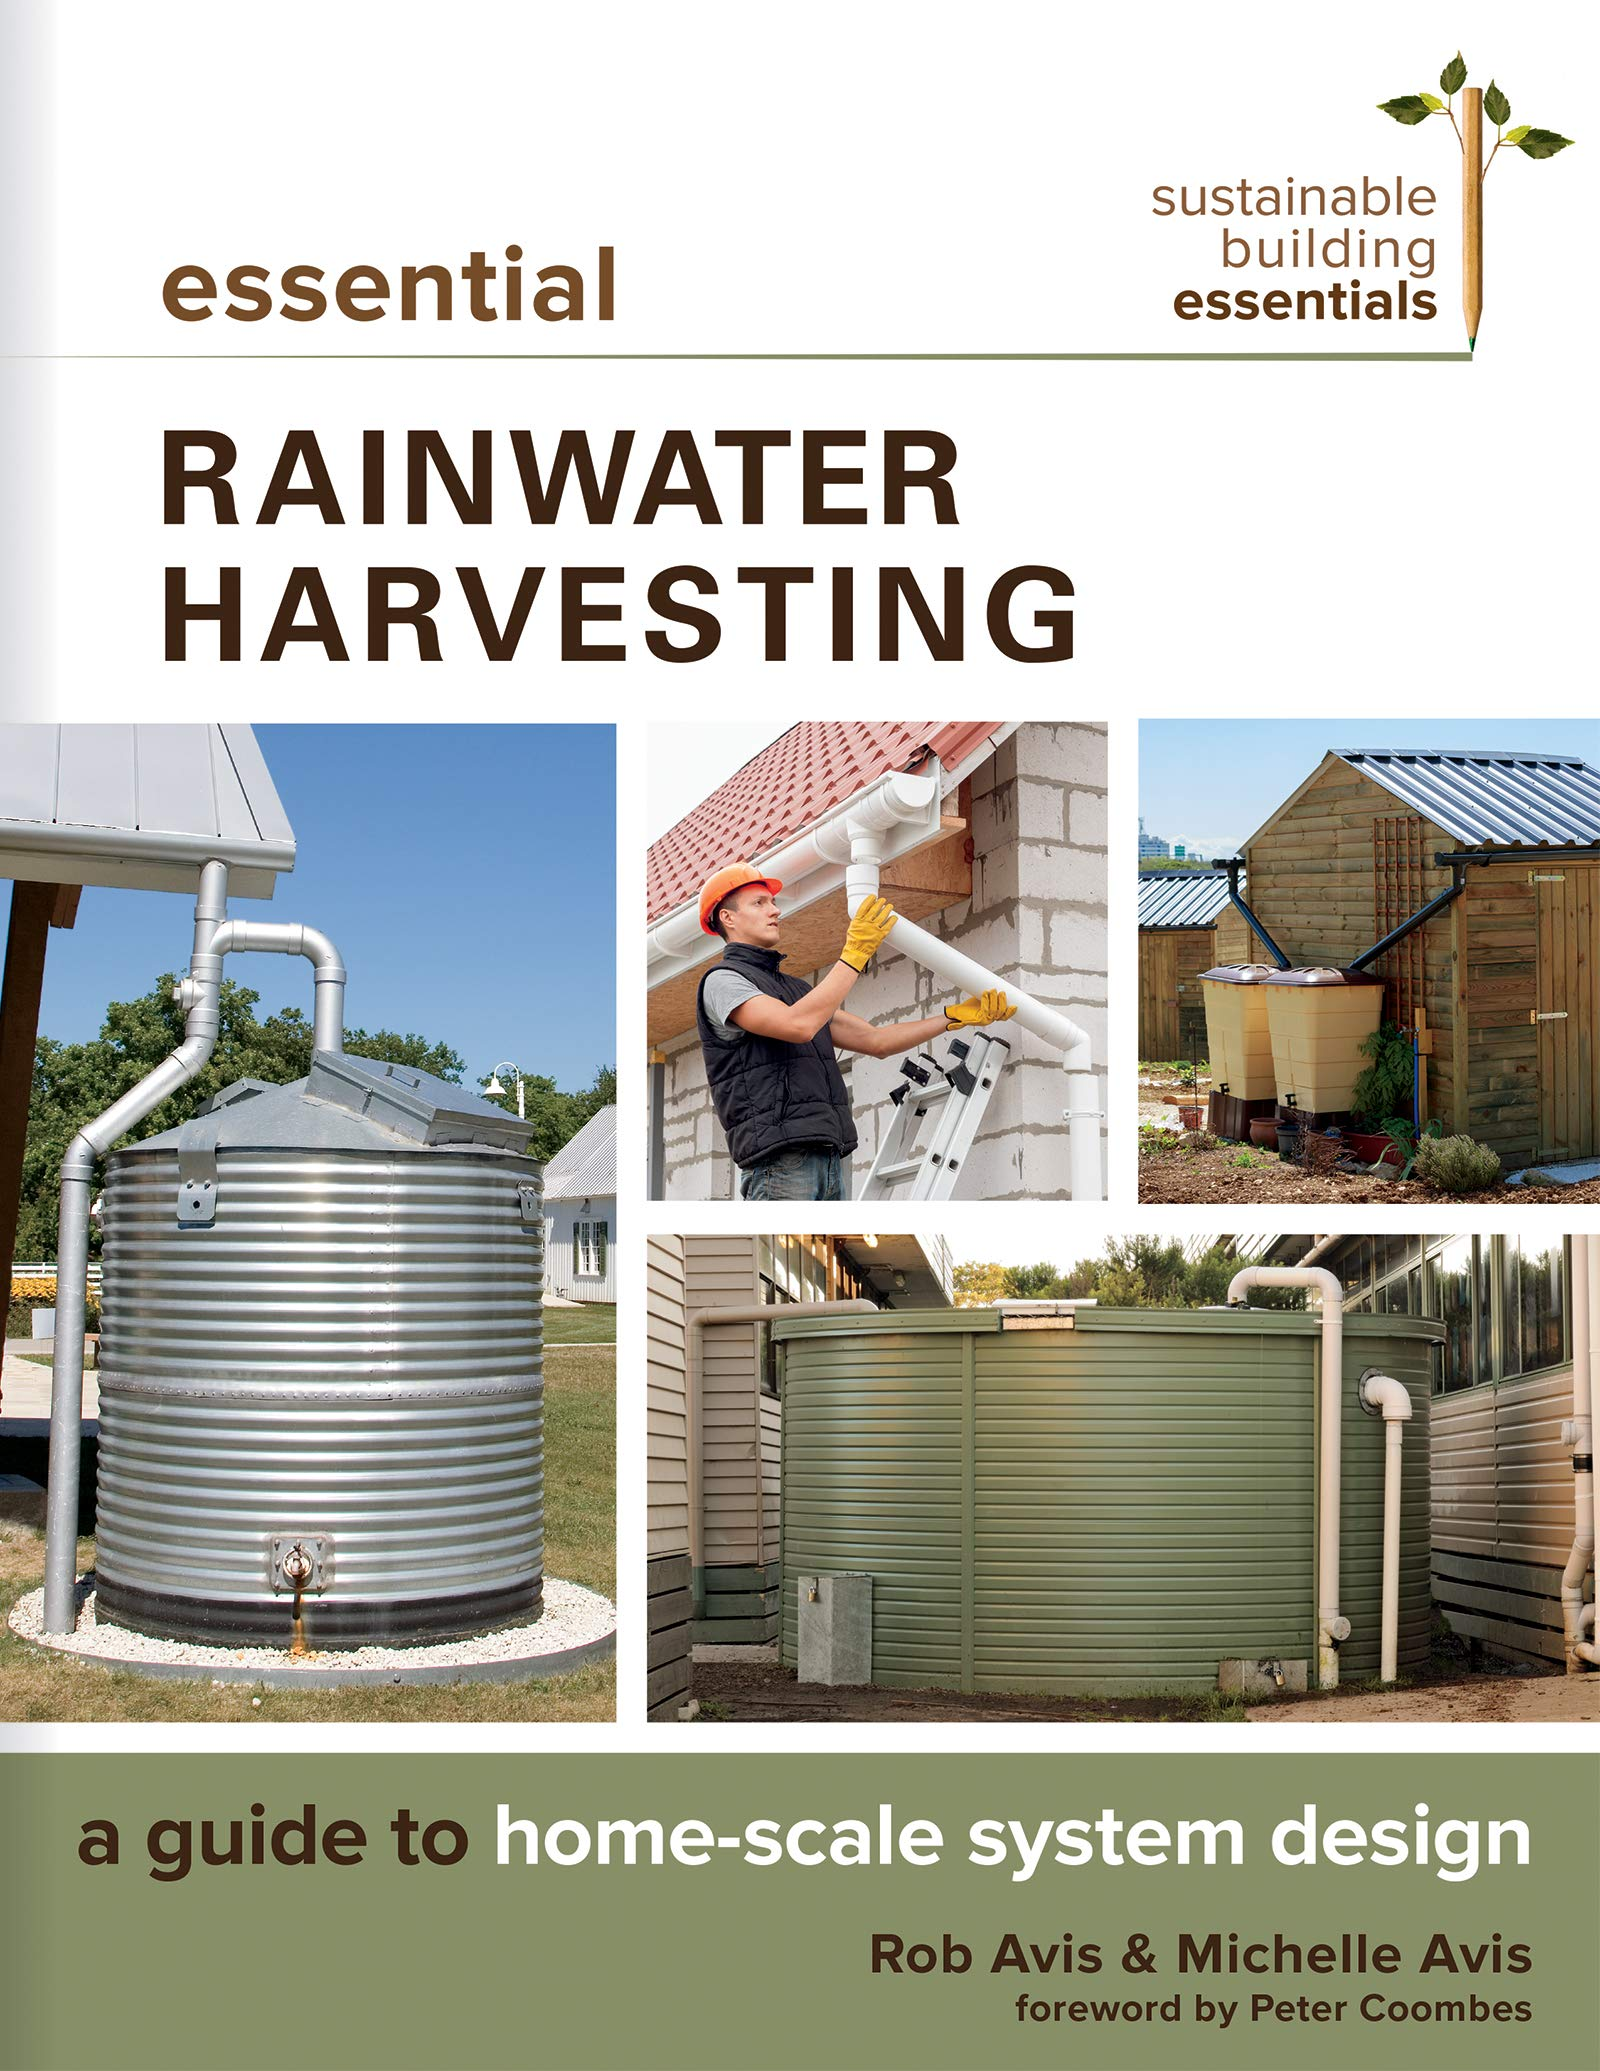 Essential Rainwater Harvesting: A Guide to Home-Scale System Design (Sustainable Building Essentials Series) by New Society Publishers